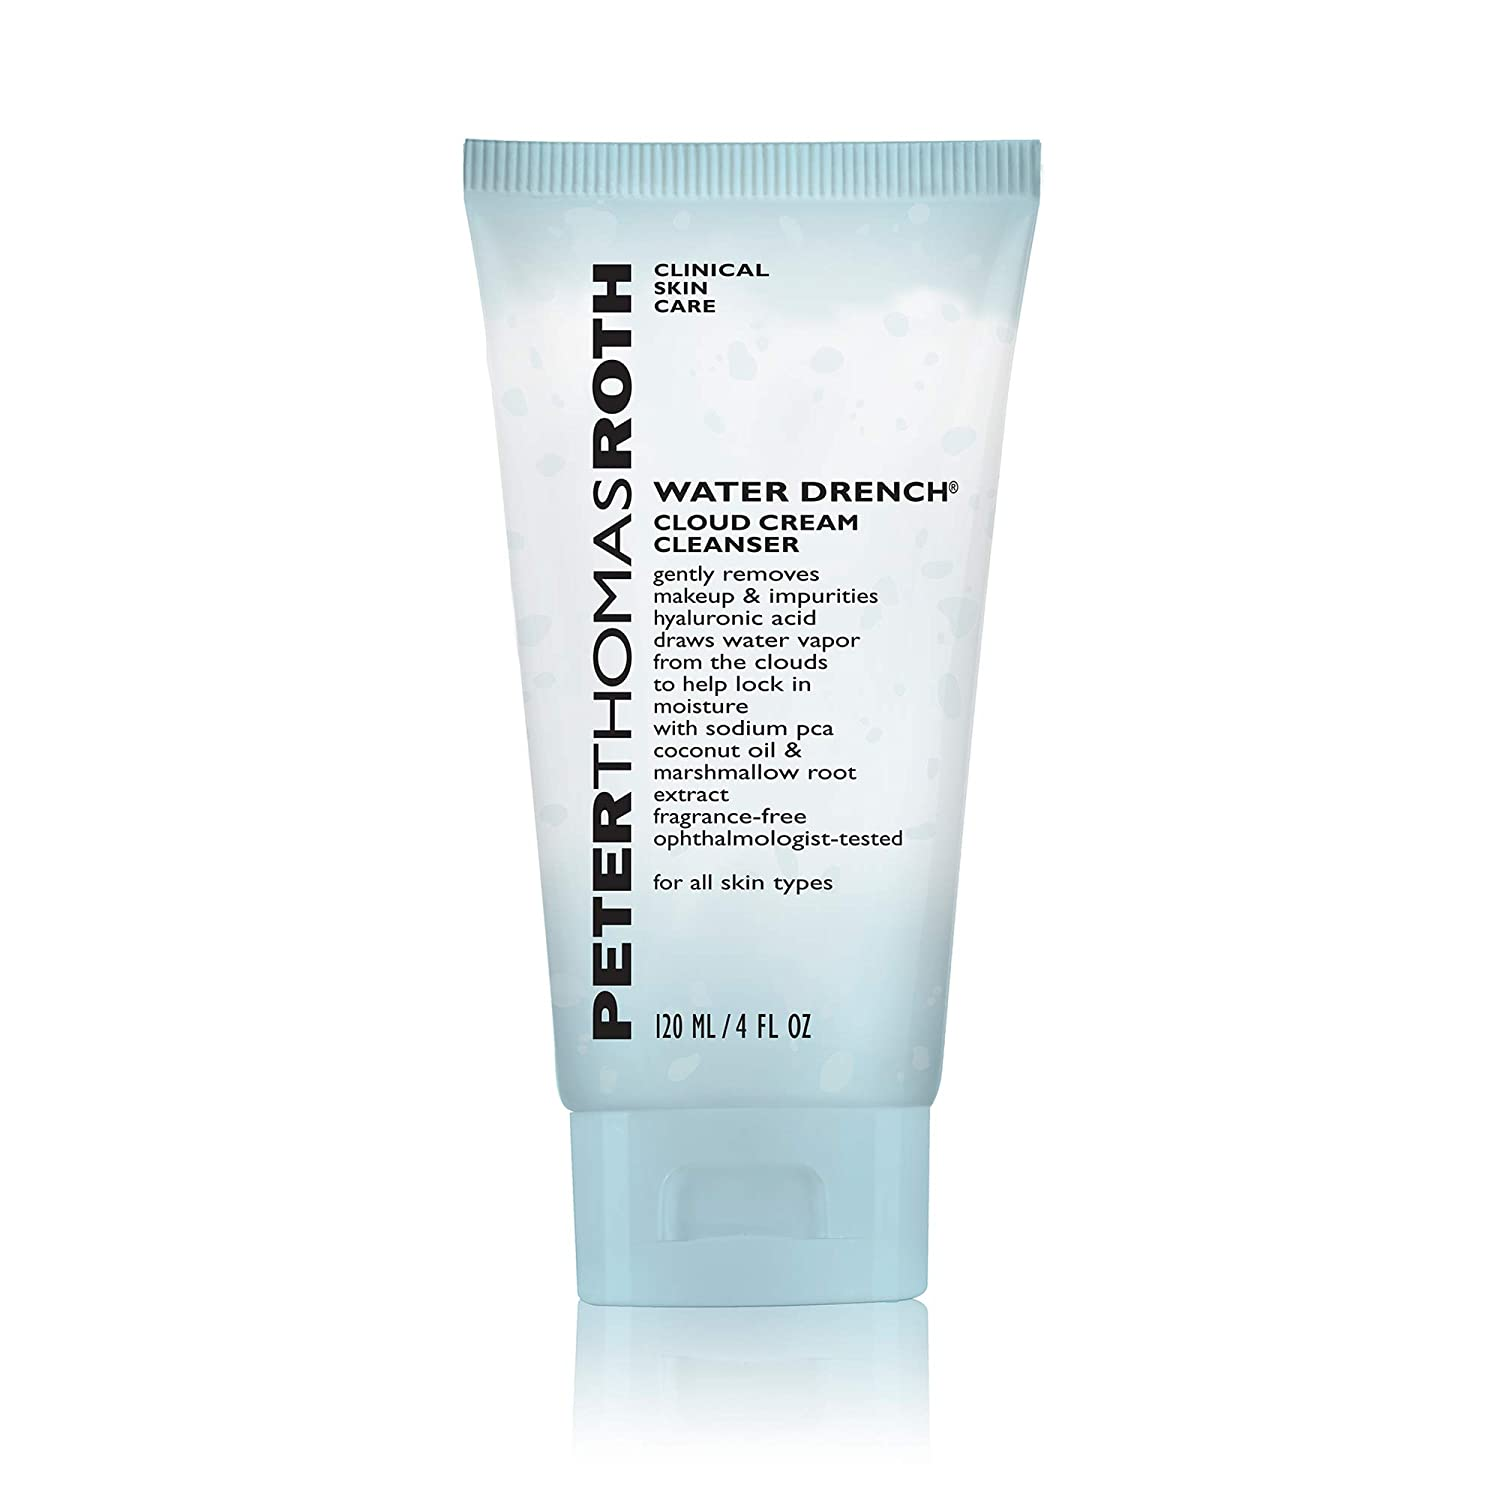 Peter Thomas Roth Water Drench F Hydrating Cleanser Cloud Cream Dallas High quality new Mall